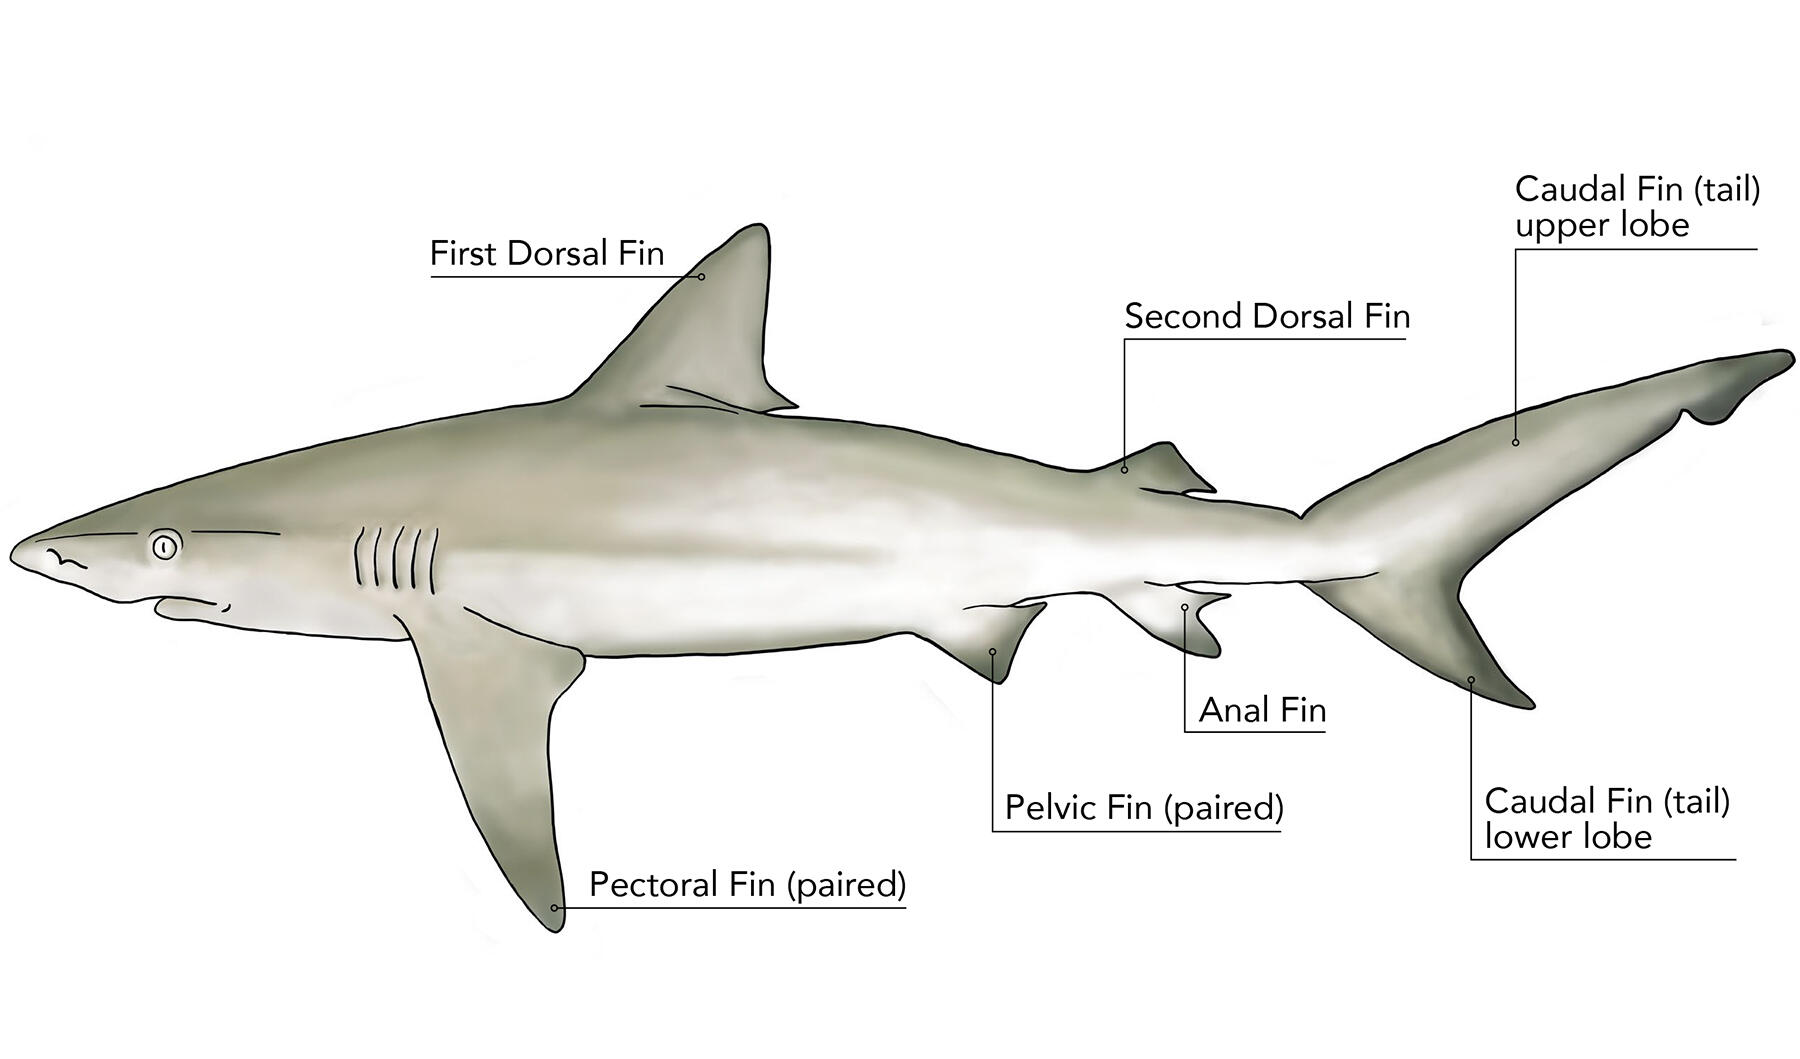 "Illustration of a shark with text on top ""First Dorsal Fin, Second Dorsal Fin, Caudal Fin (tail) upper lobe"" on bottom ""Pectoral Fin (paired), Pelvic Fin (paired), Anal Fin, Caudal Fin (tail) lower lobe""."